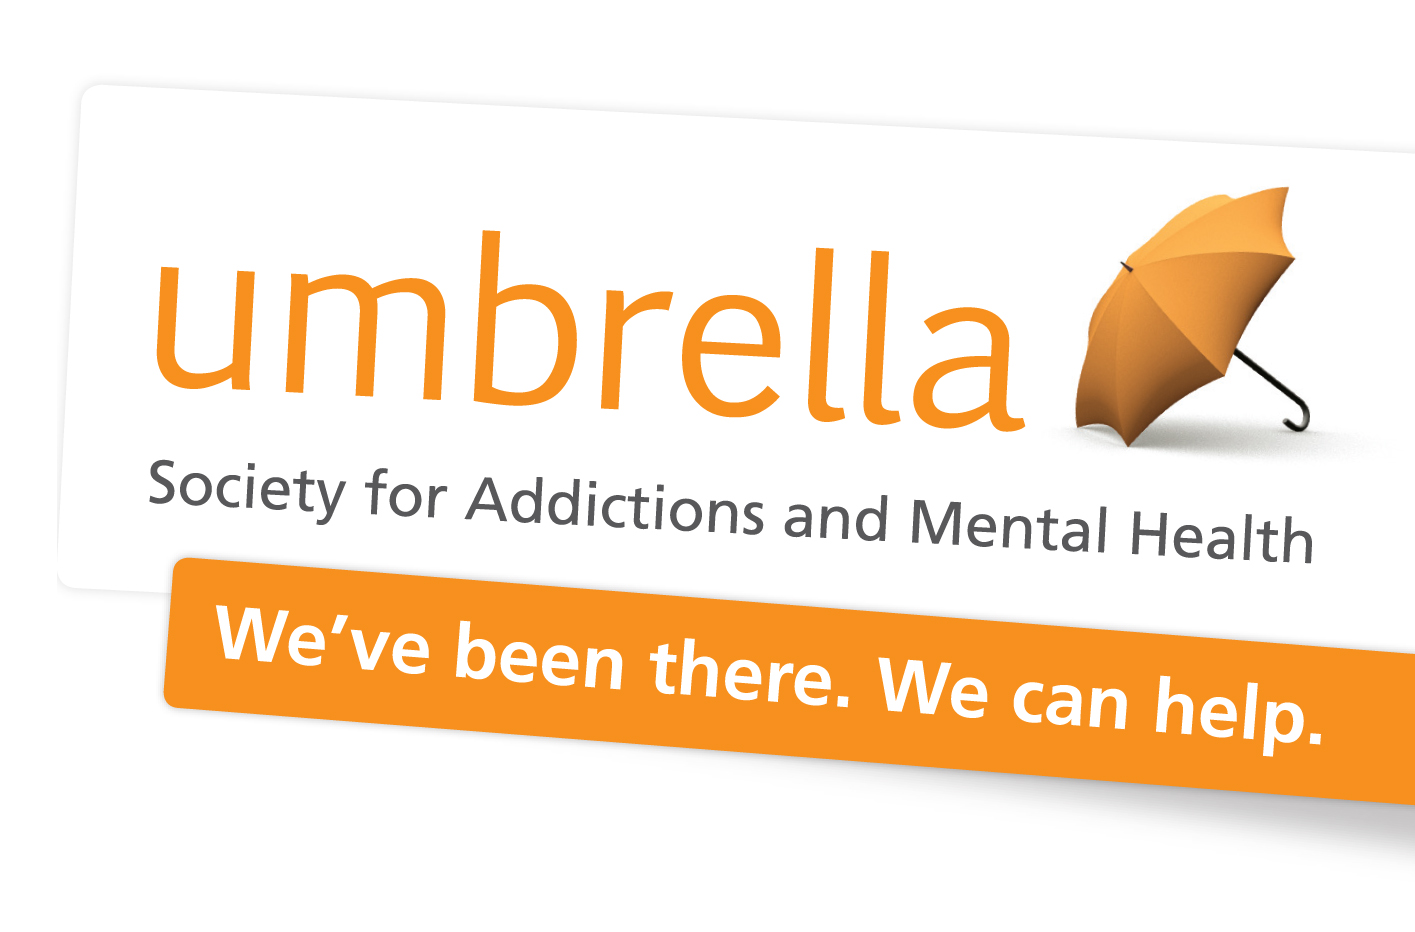 Umbrella_logo.jpg